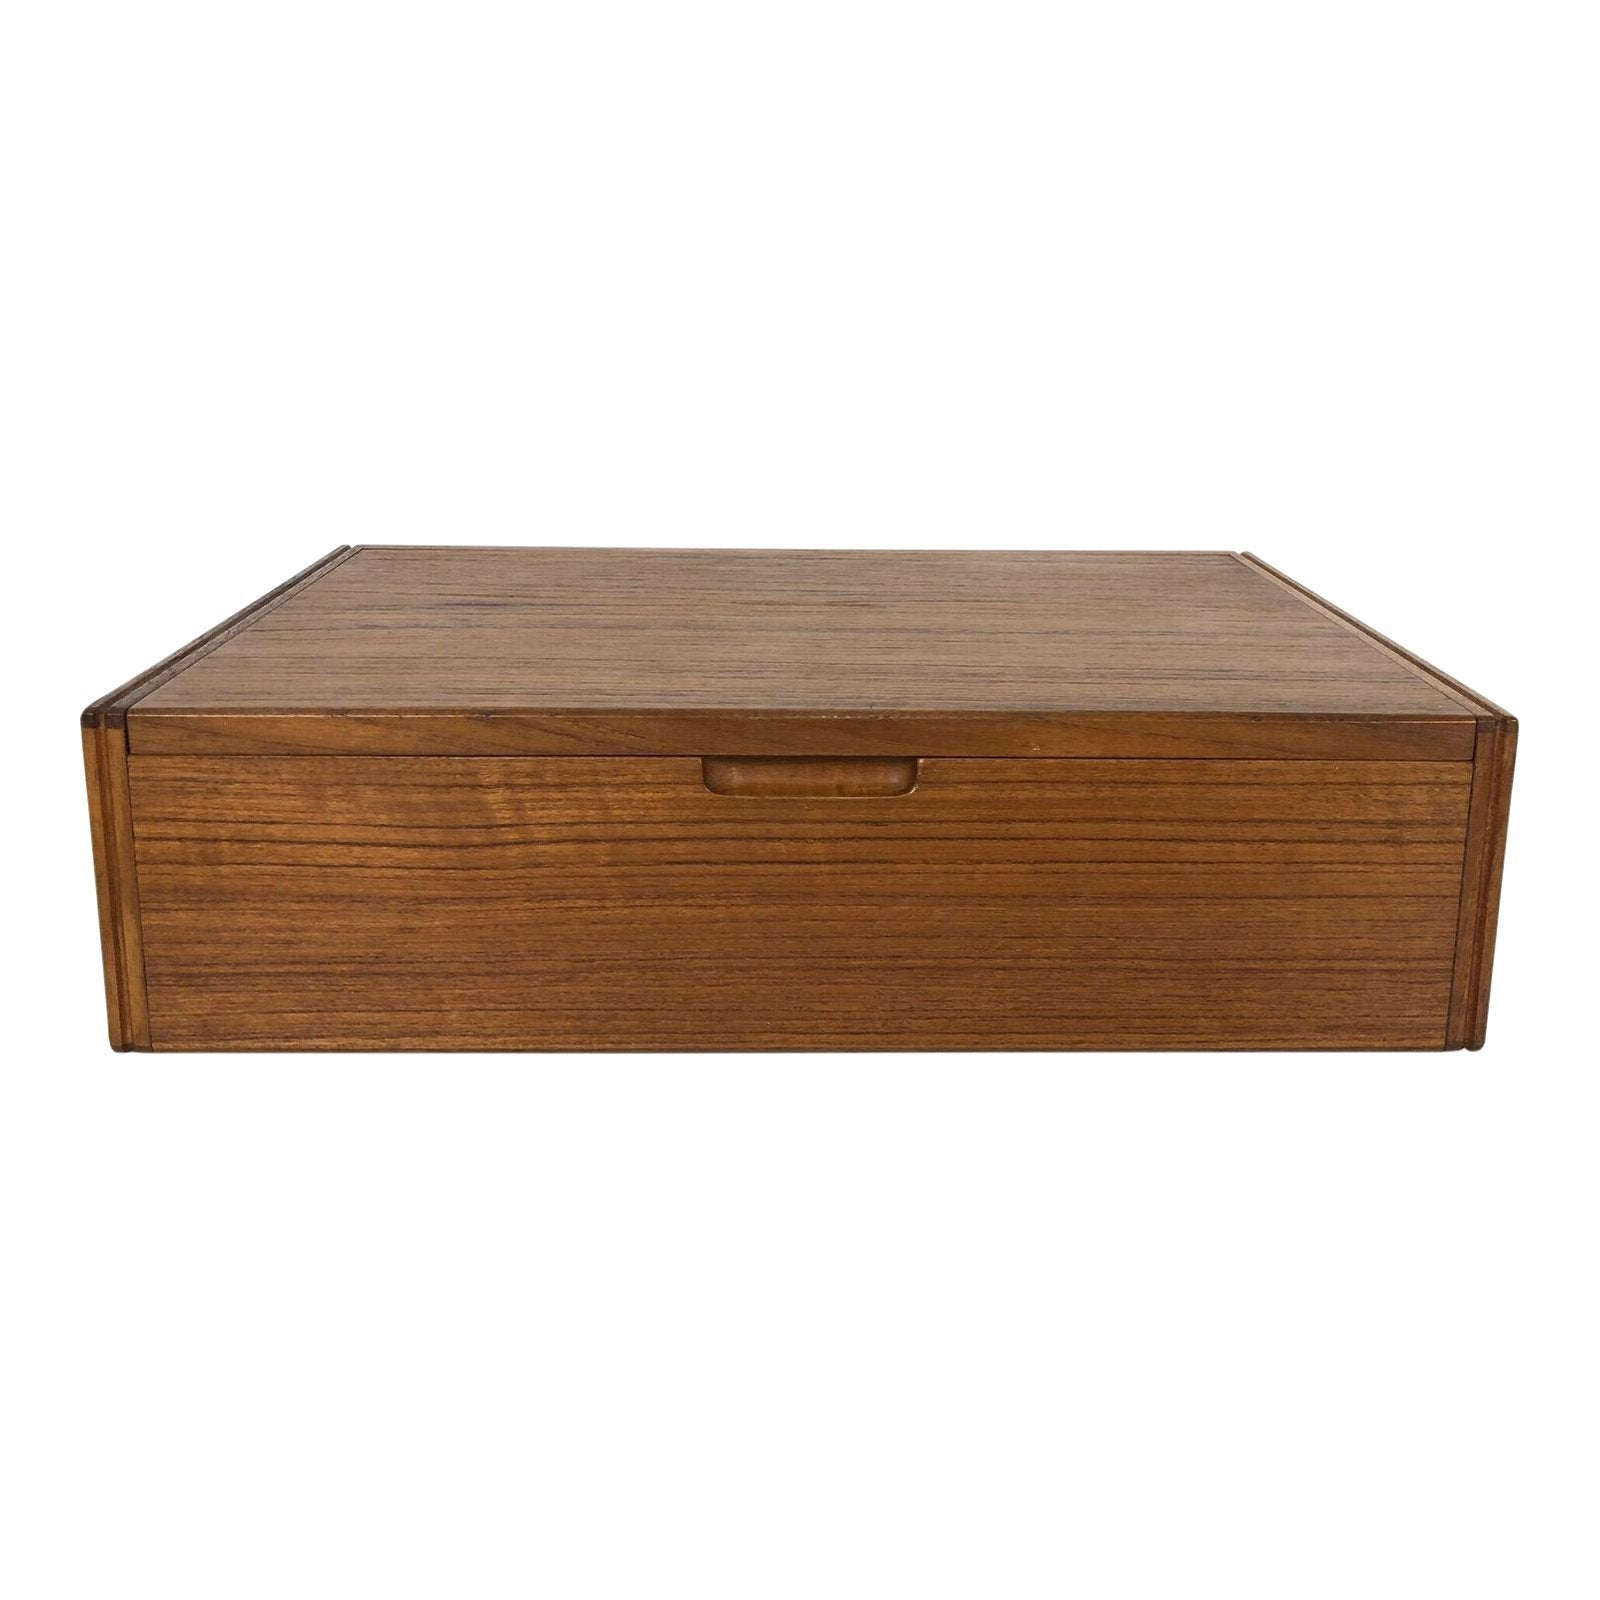 Svend Langkilde Rosewood Jewelry Box with Interior Mirror, 1950s - The Exchange Int